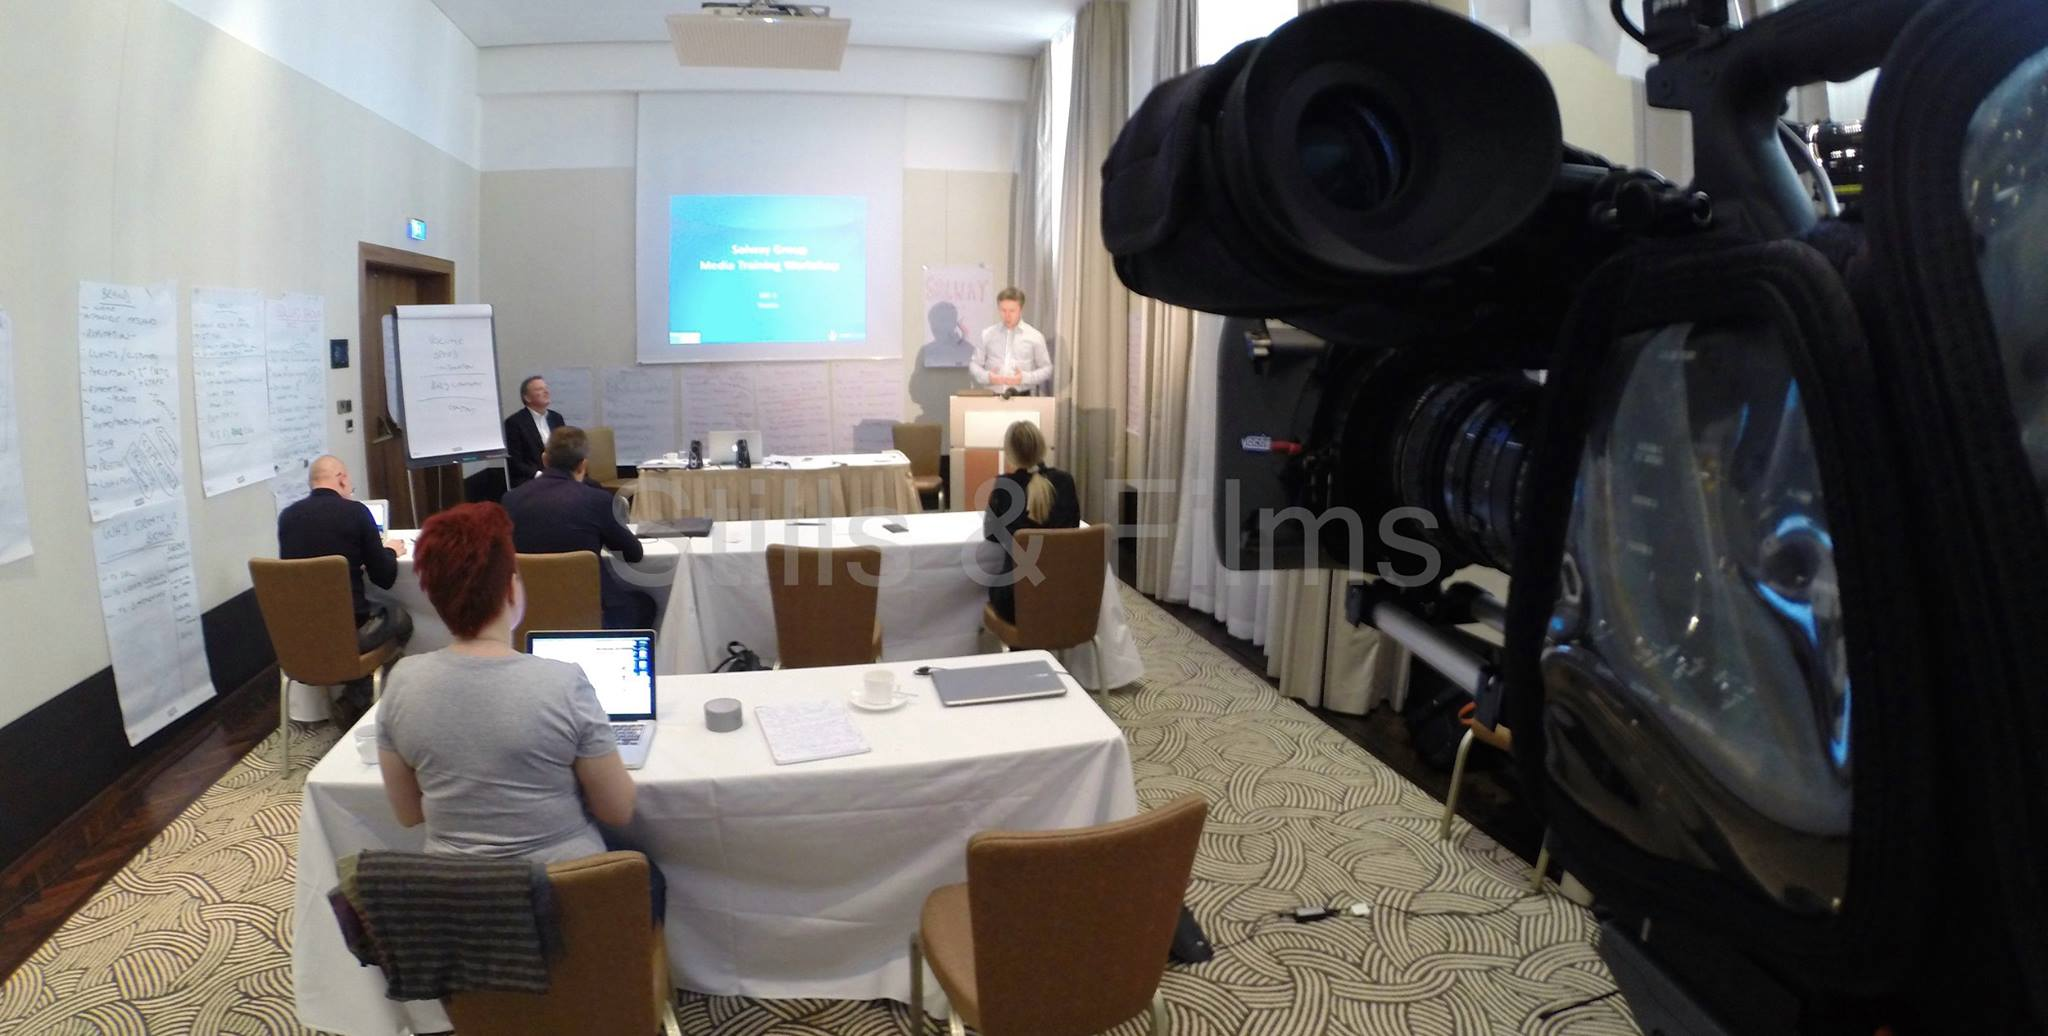 Media training in the Ritz Carlton hotel in Vienna, Austria for representatives of a Russian oil company